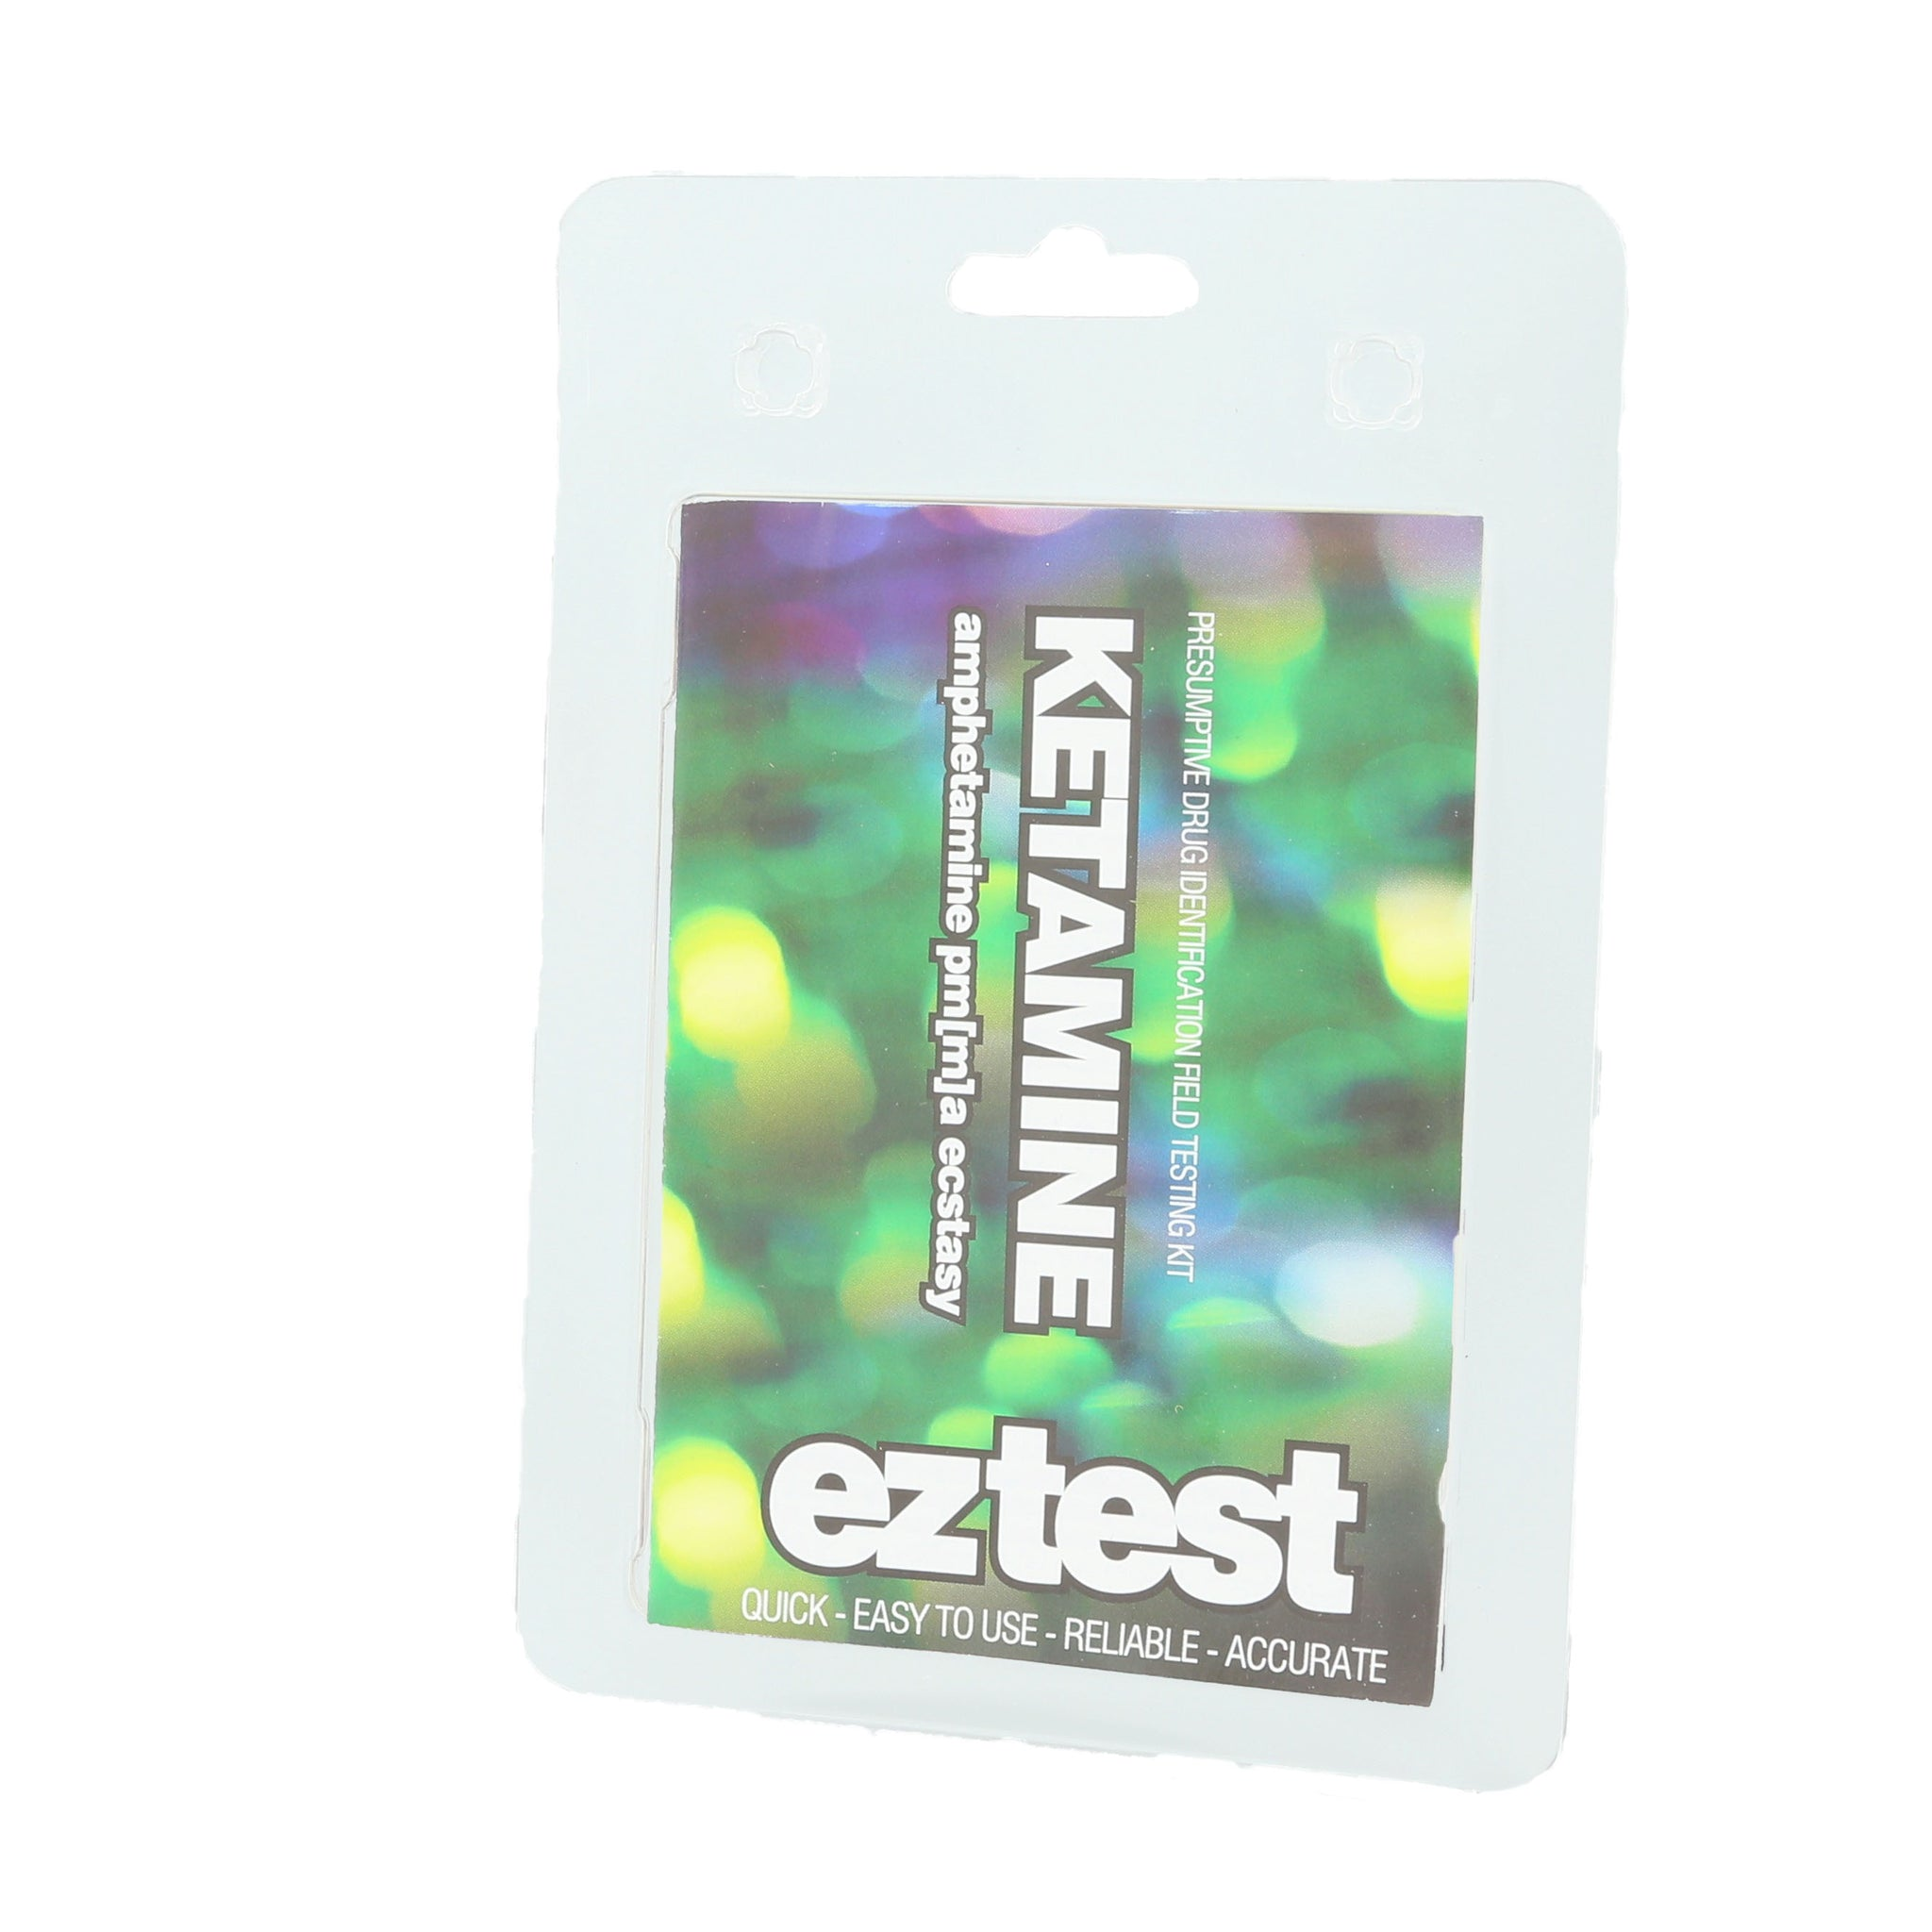 Eztest for Ketamine - Cheeky Ninjas